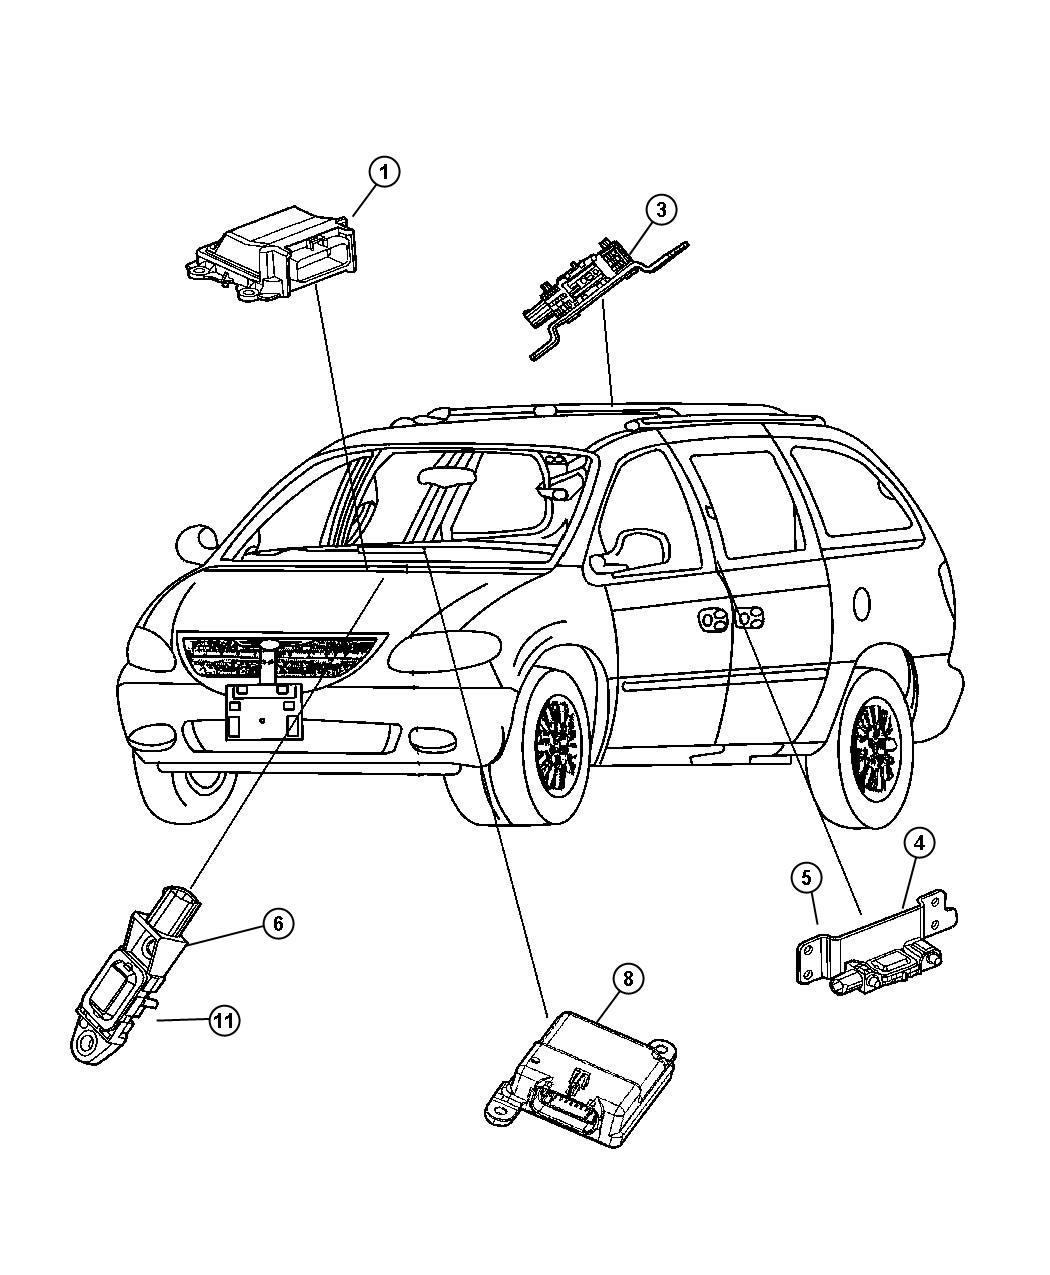 Wiring Diagram 2008 Chrysler Town And Country Body Parts Source 2007 Saturn Aura Door Additionally 2003 Chevy Silverado Brake Problems P 0996b43f803797c8